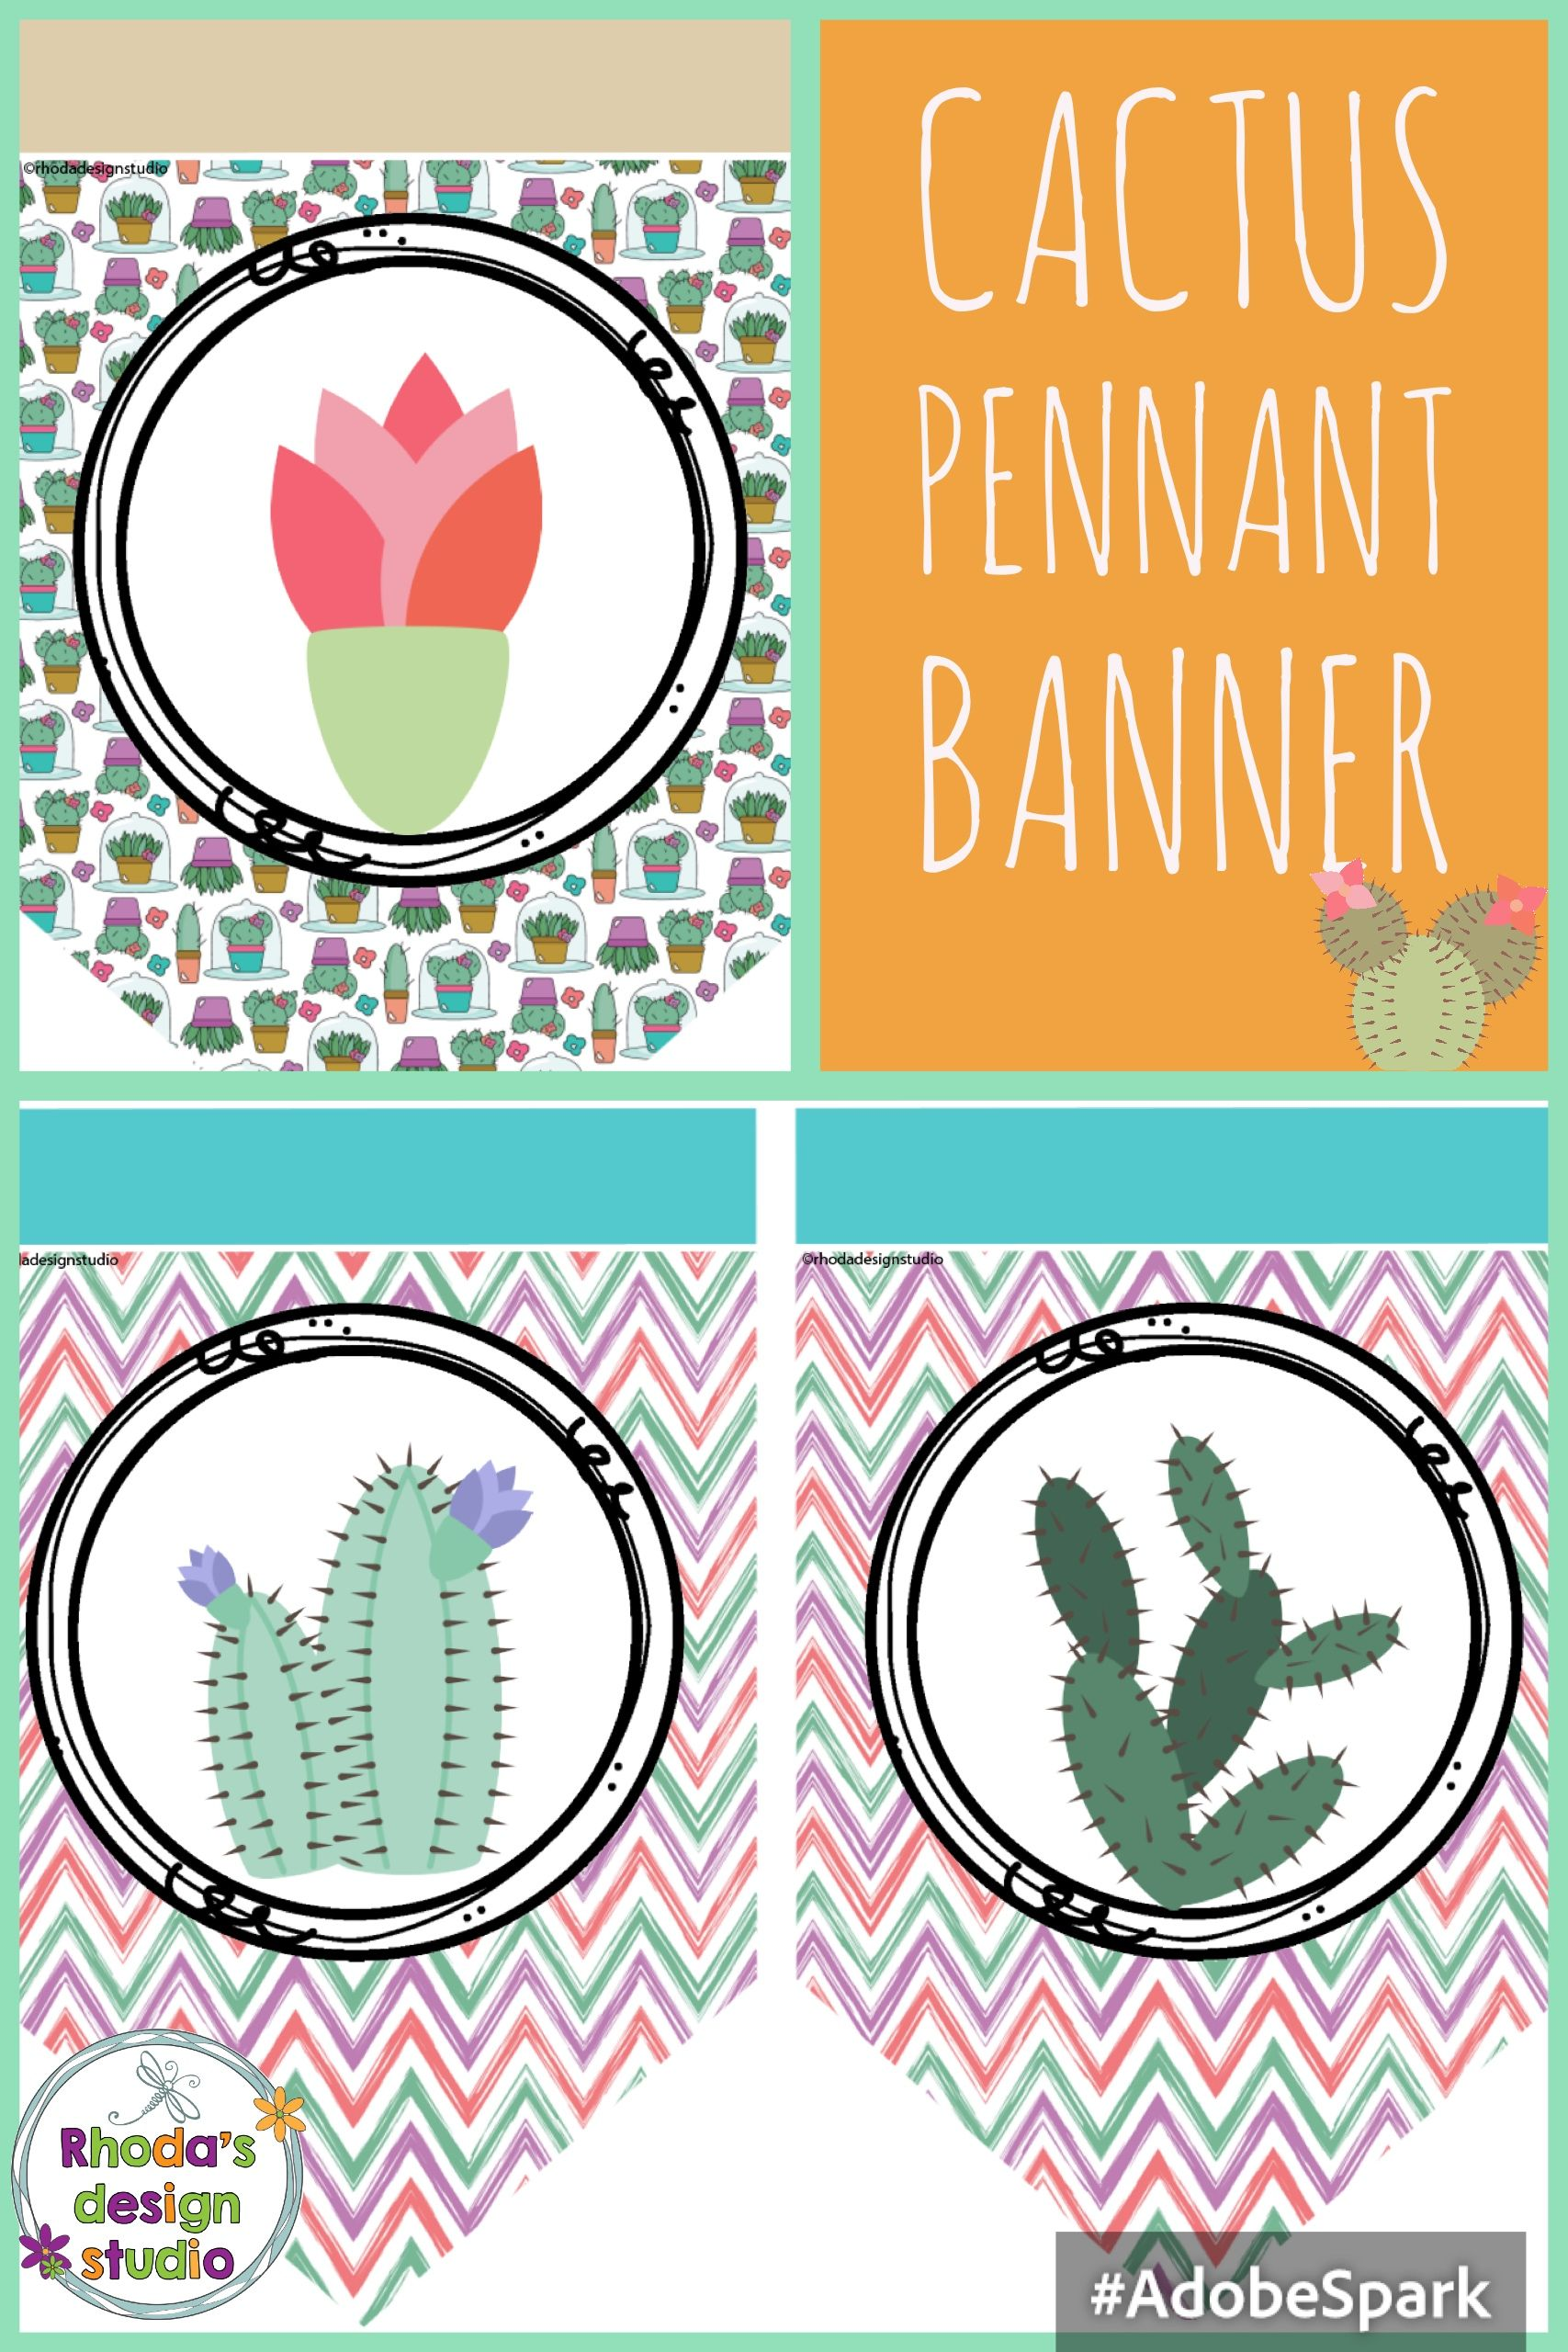 This Is A Printable Banner That Can Be Used For Home Decor